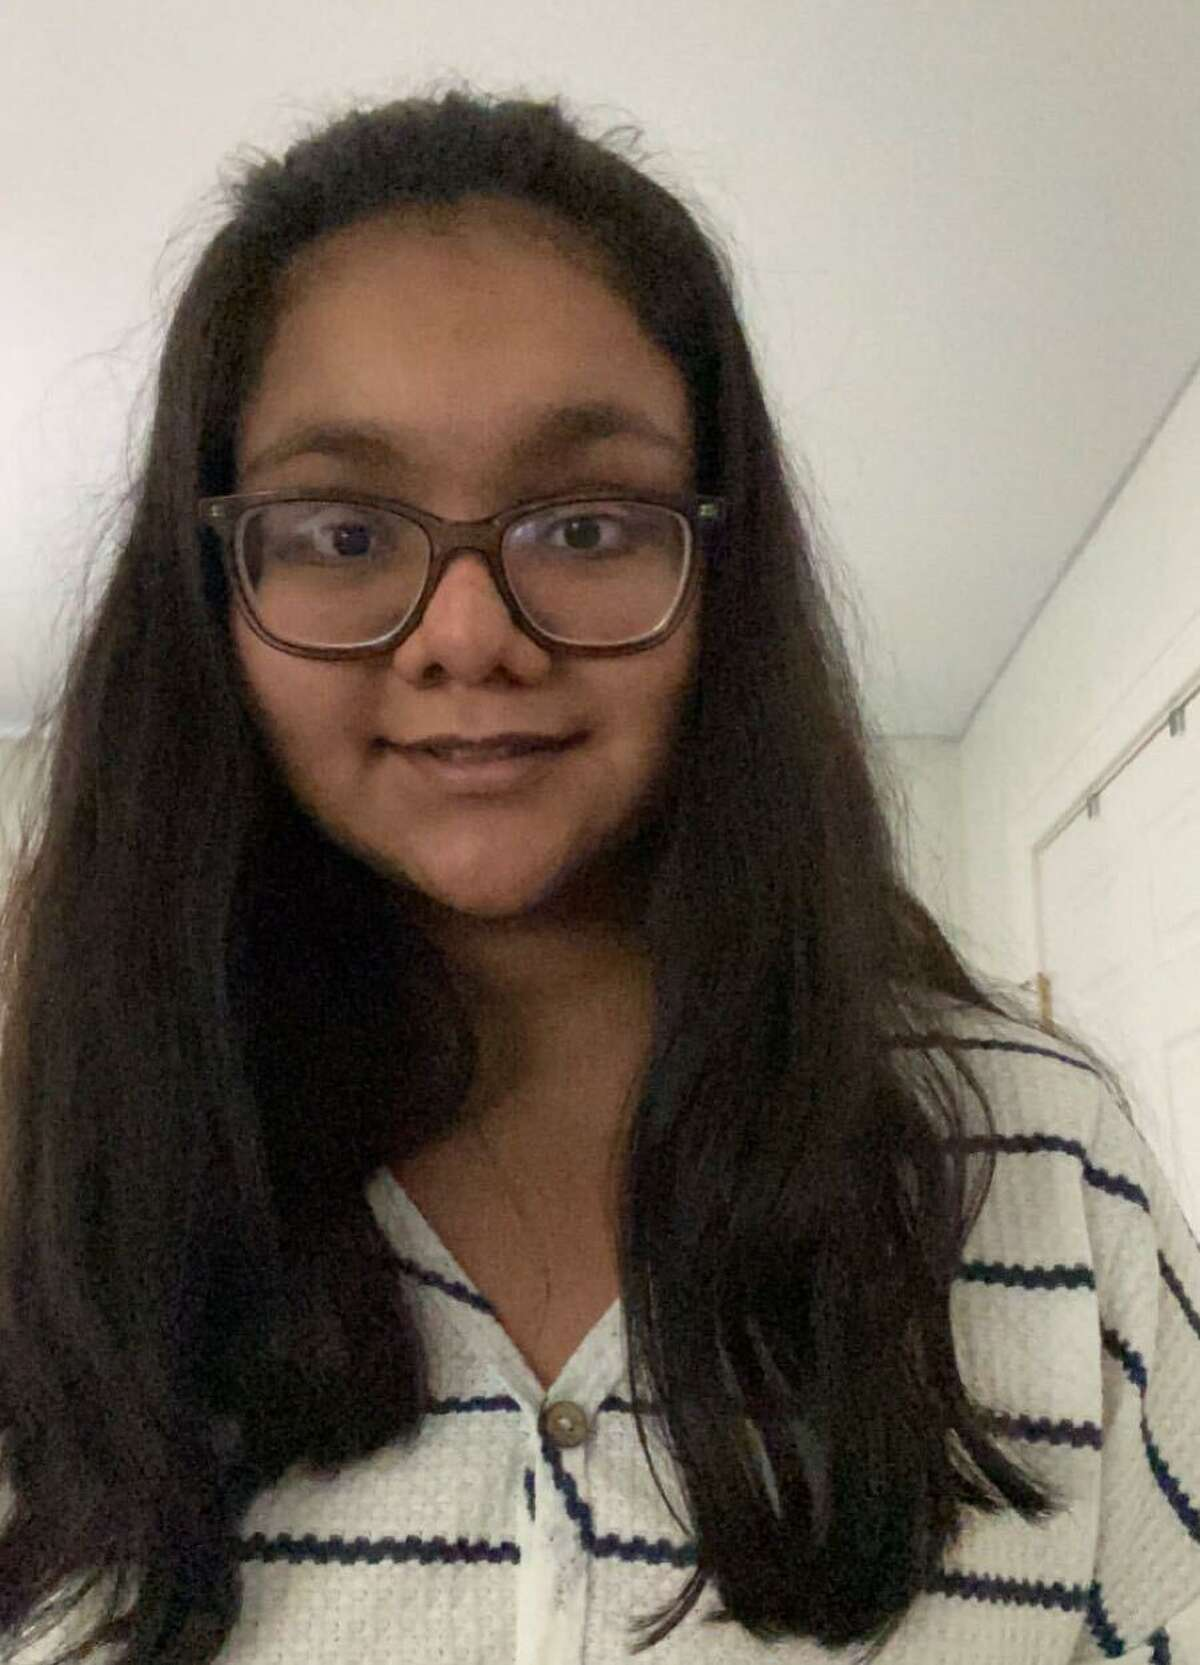 Shelton High freshman Simrin Khan will be on the all-female panel for a webinar titled Connecticut Gears up for Back to School: A COVID-19 Crash Course on Thursday at 6 p.m.